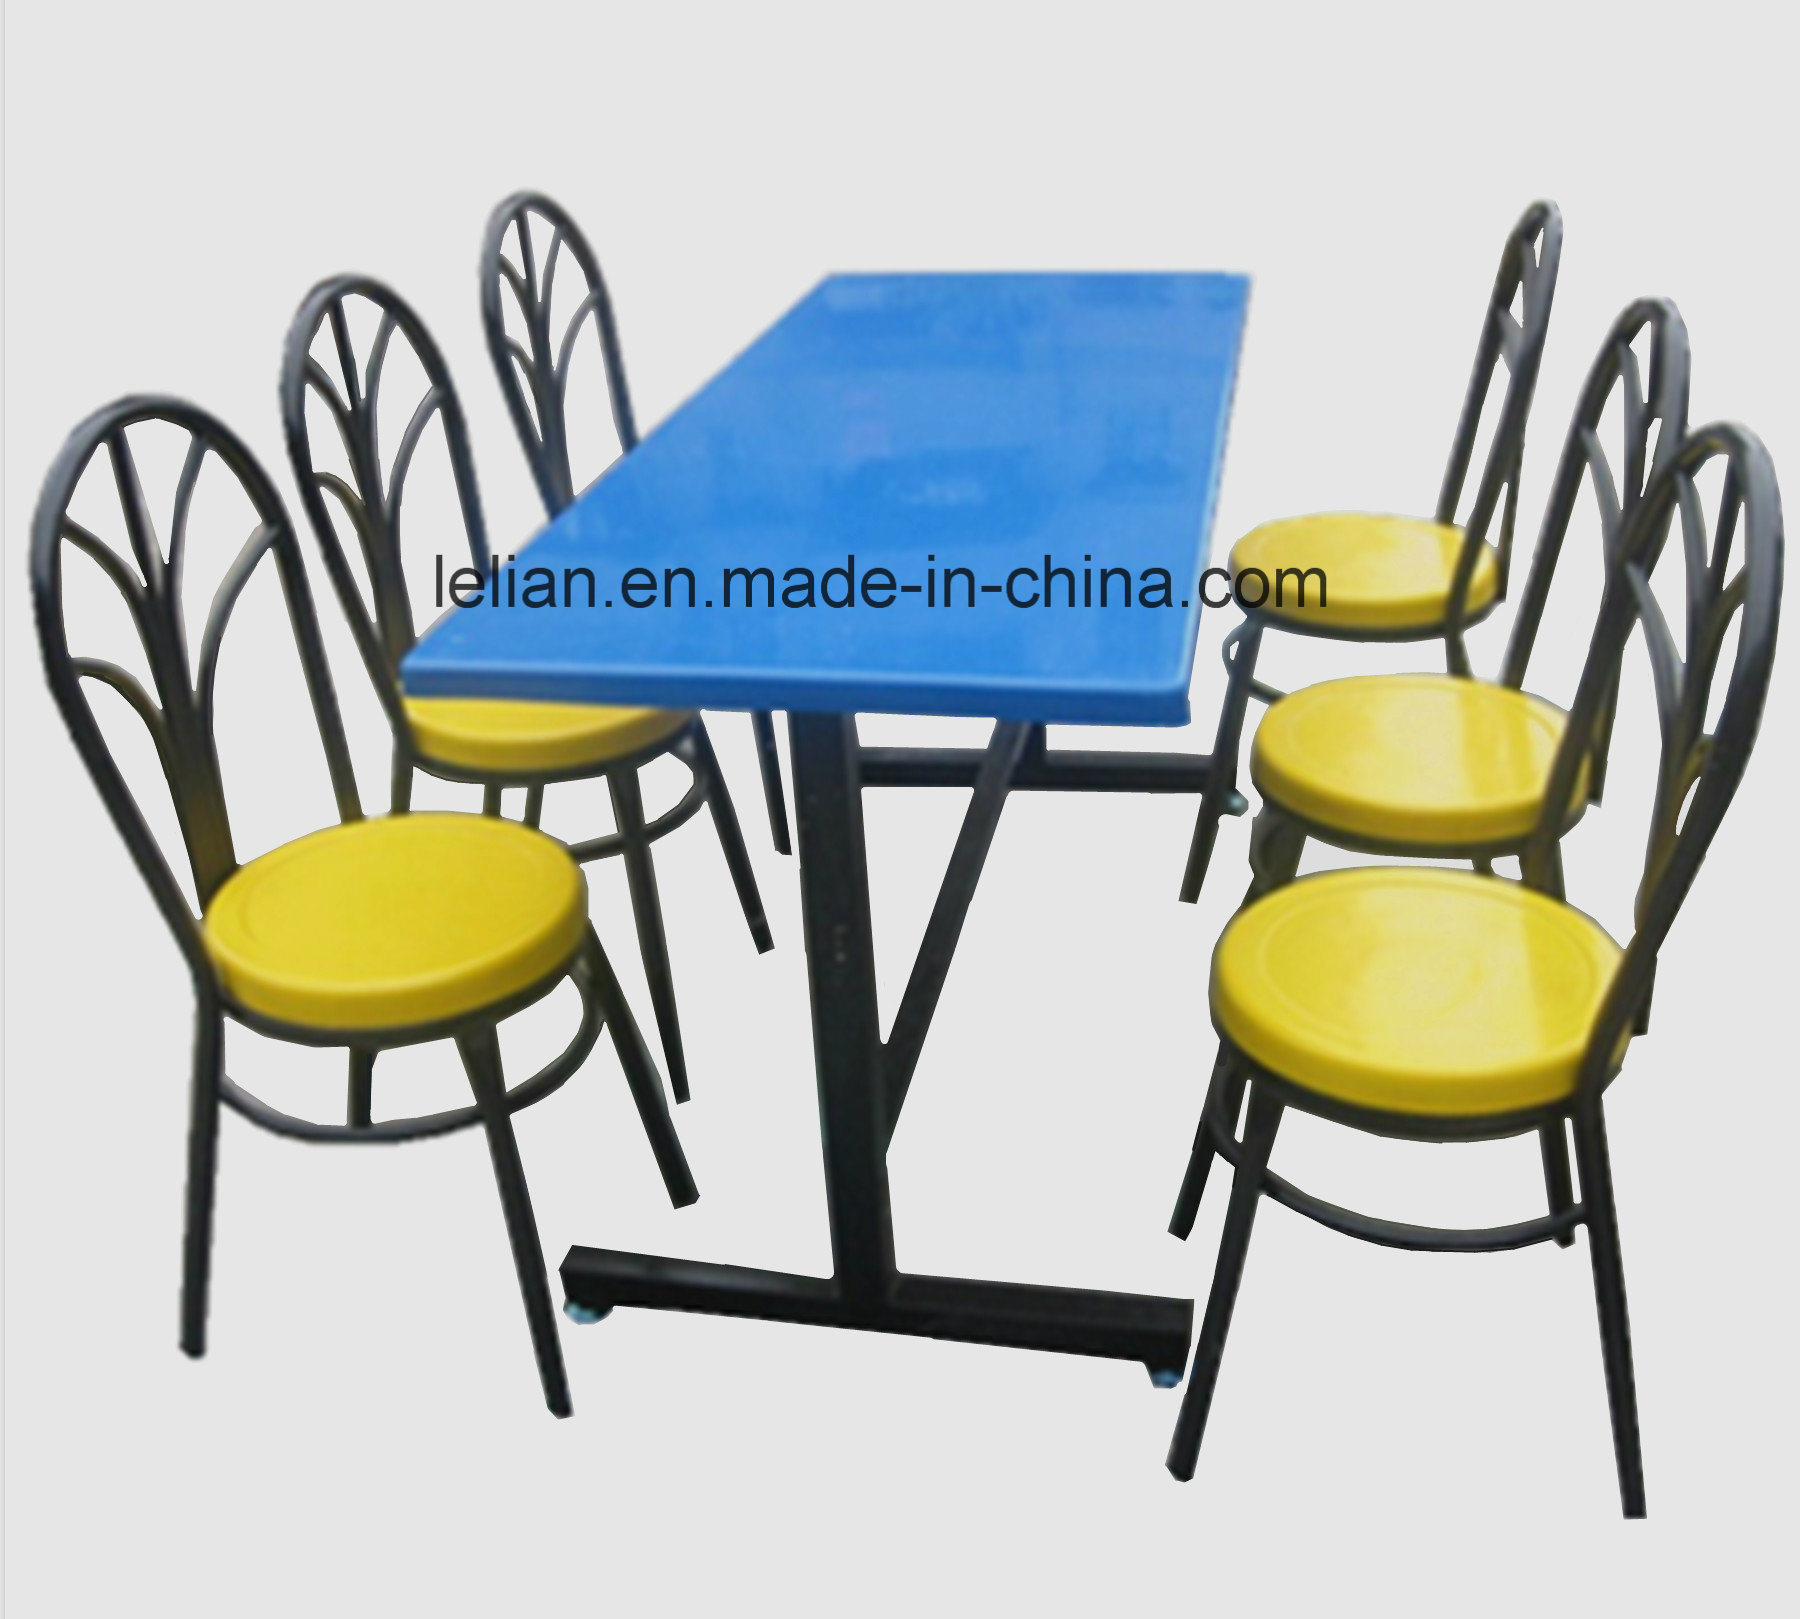 Fiber Glass Dining Table and Chair Set (LL-DST004)